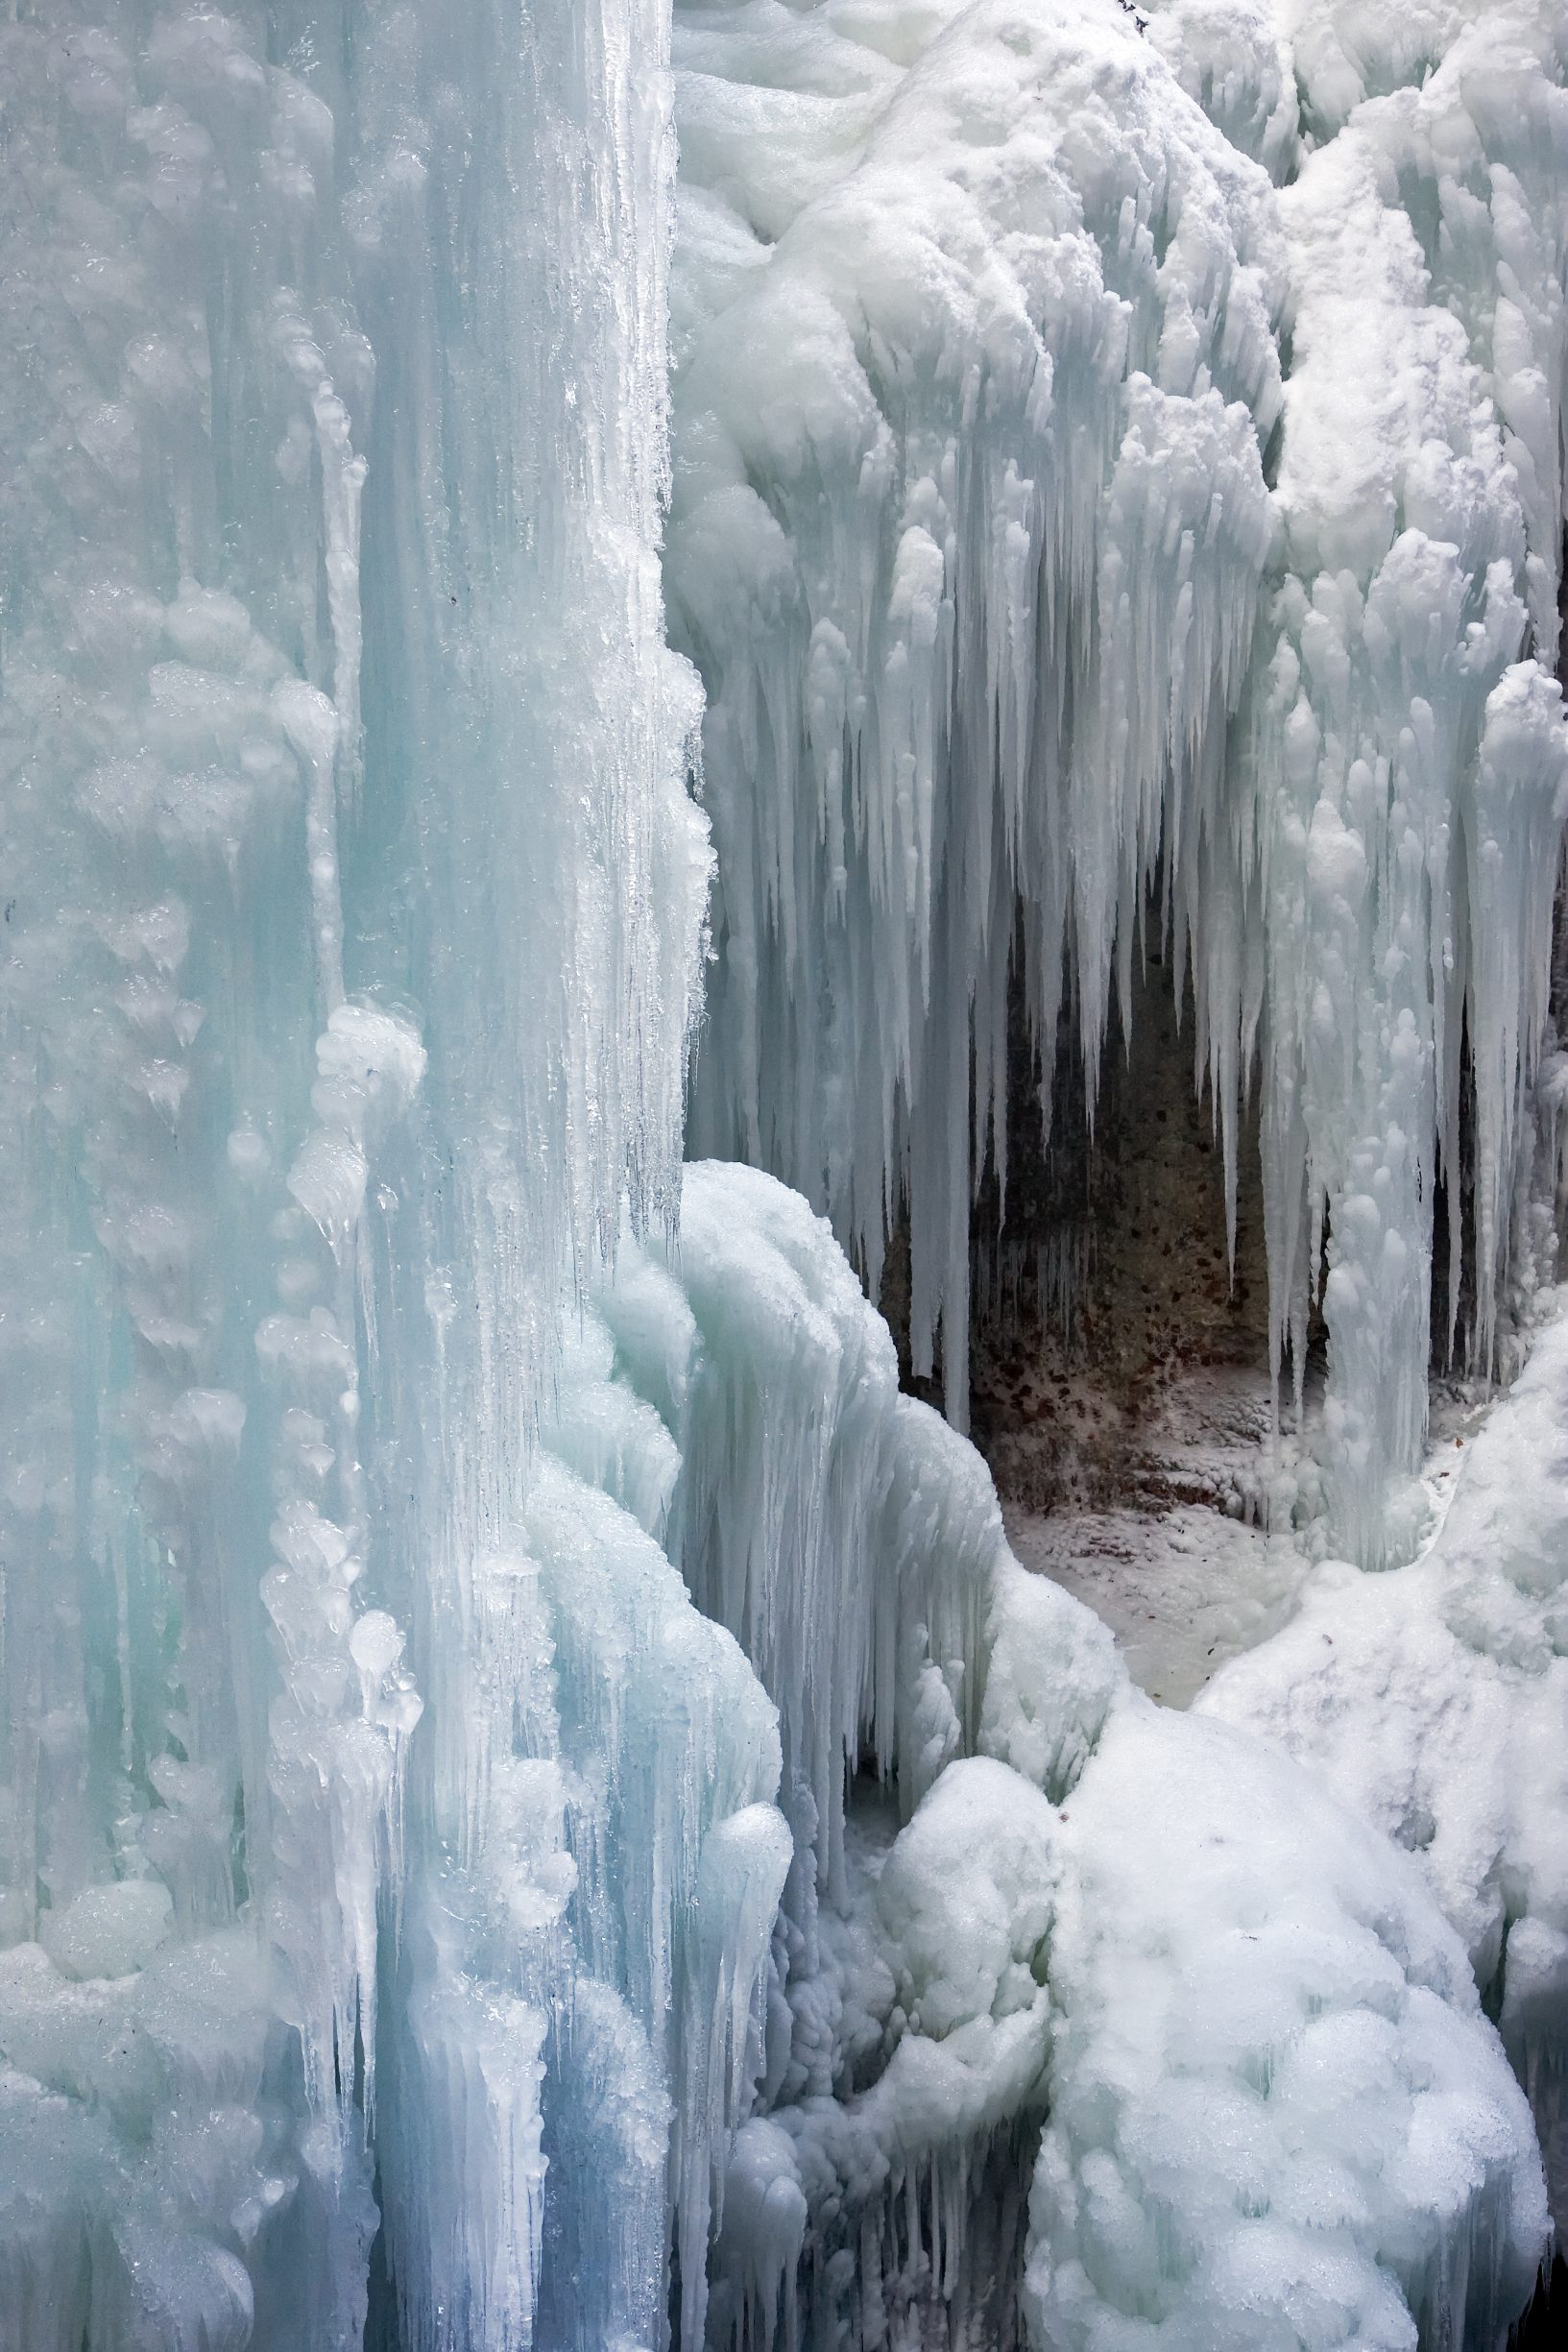 """Icicles Partnachklamm rb"" by Richard Bartz - Own work. Licensed under CC BY-SA 2.5 via Wikimedia Commons"